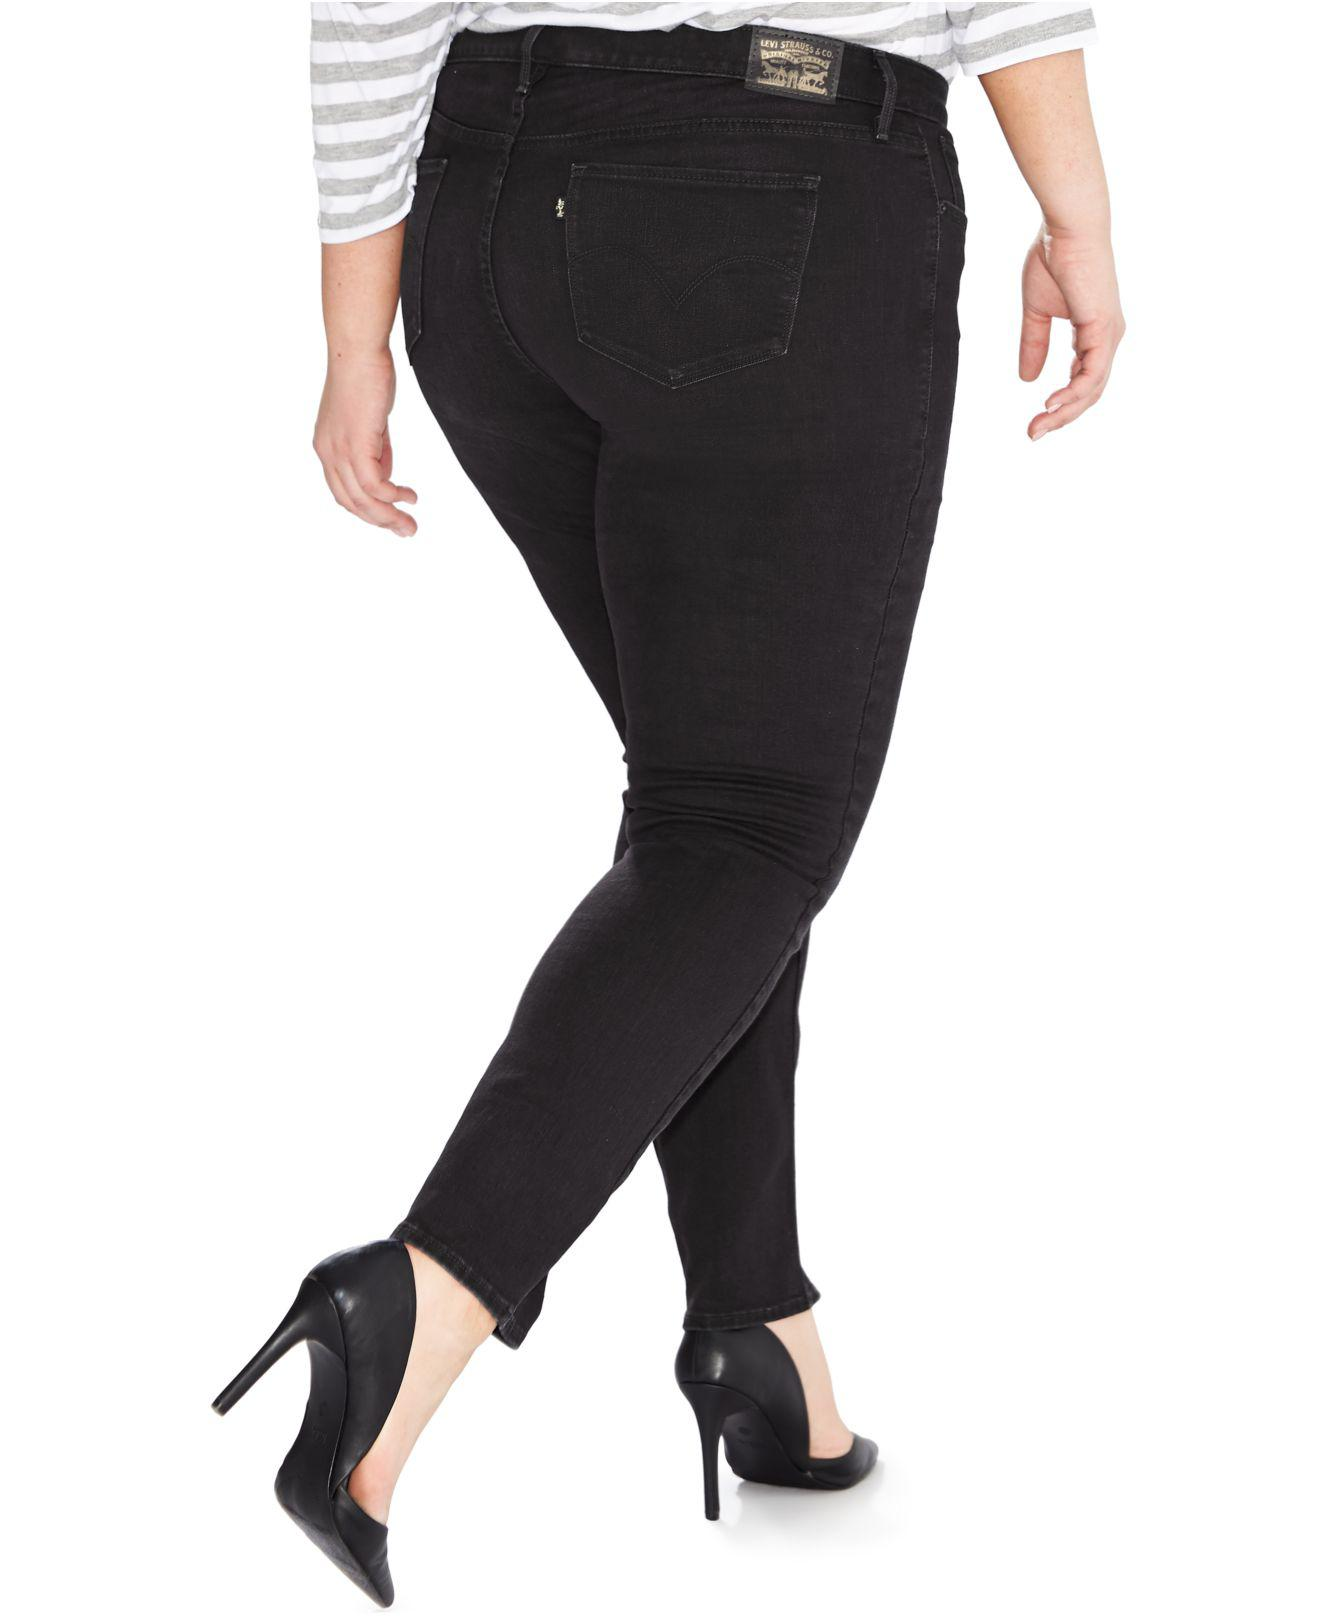 9b2fba23d00 Lyst - Levi s Plus Size 311 Shaping Skinny Jeans in Black